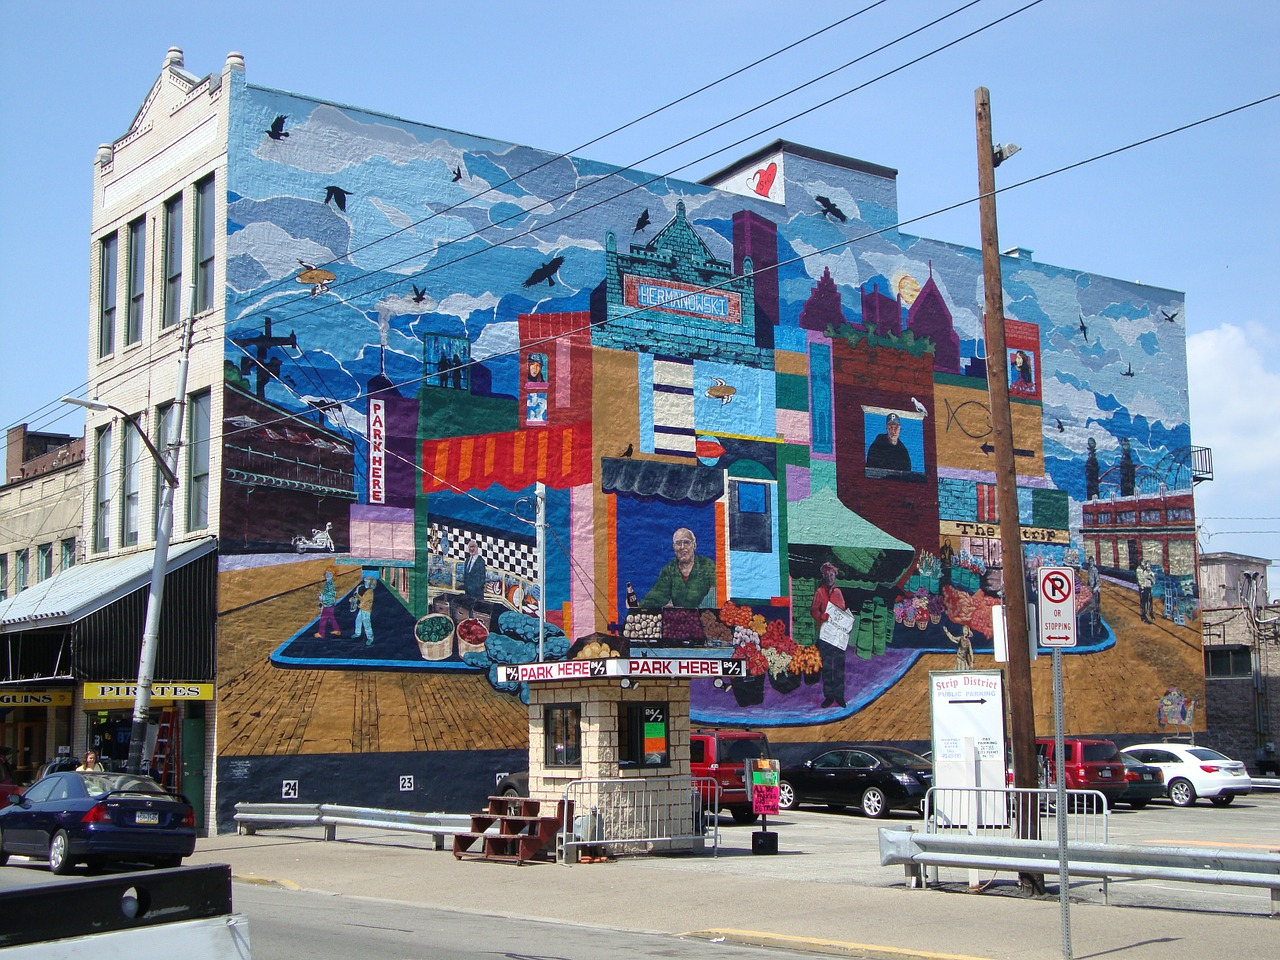 Visiting Pittsburgh's Strip District is an absolute must on our 50 Things to Do in Pittsburgh This Summer.